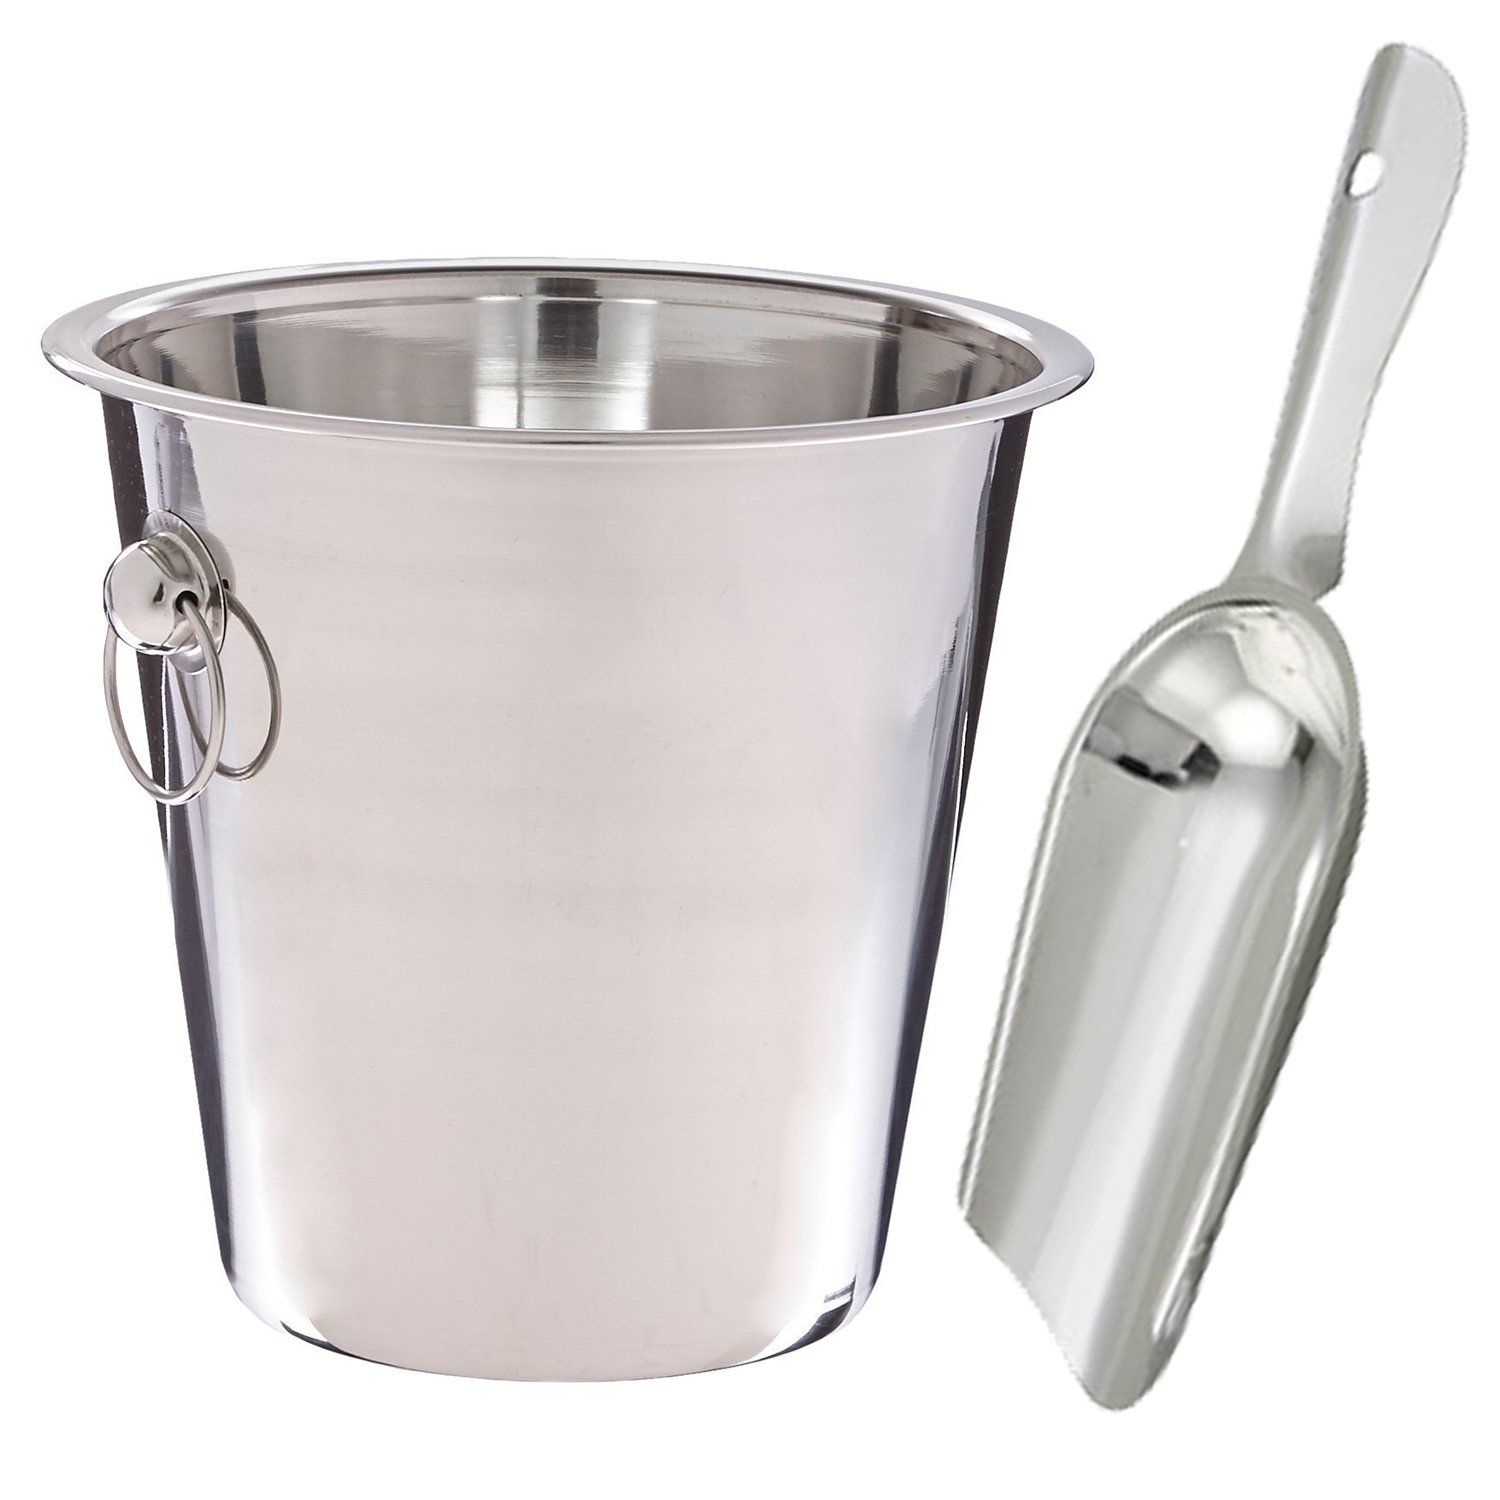 Wine Bucket 4 qt. Stainless Steel 4 oz. Ice Scoop by Culinary Depot